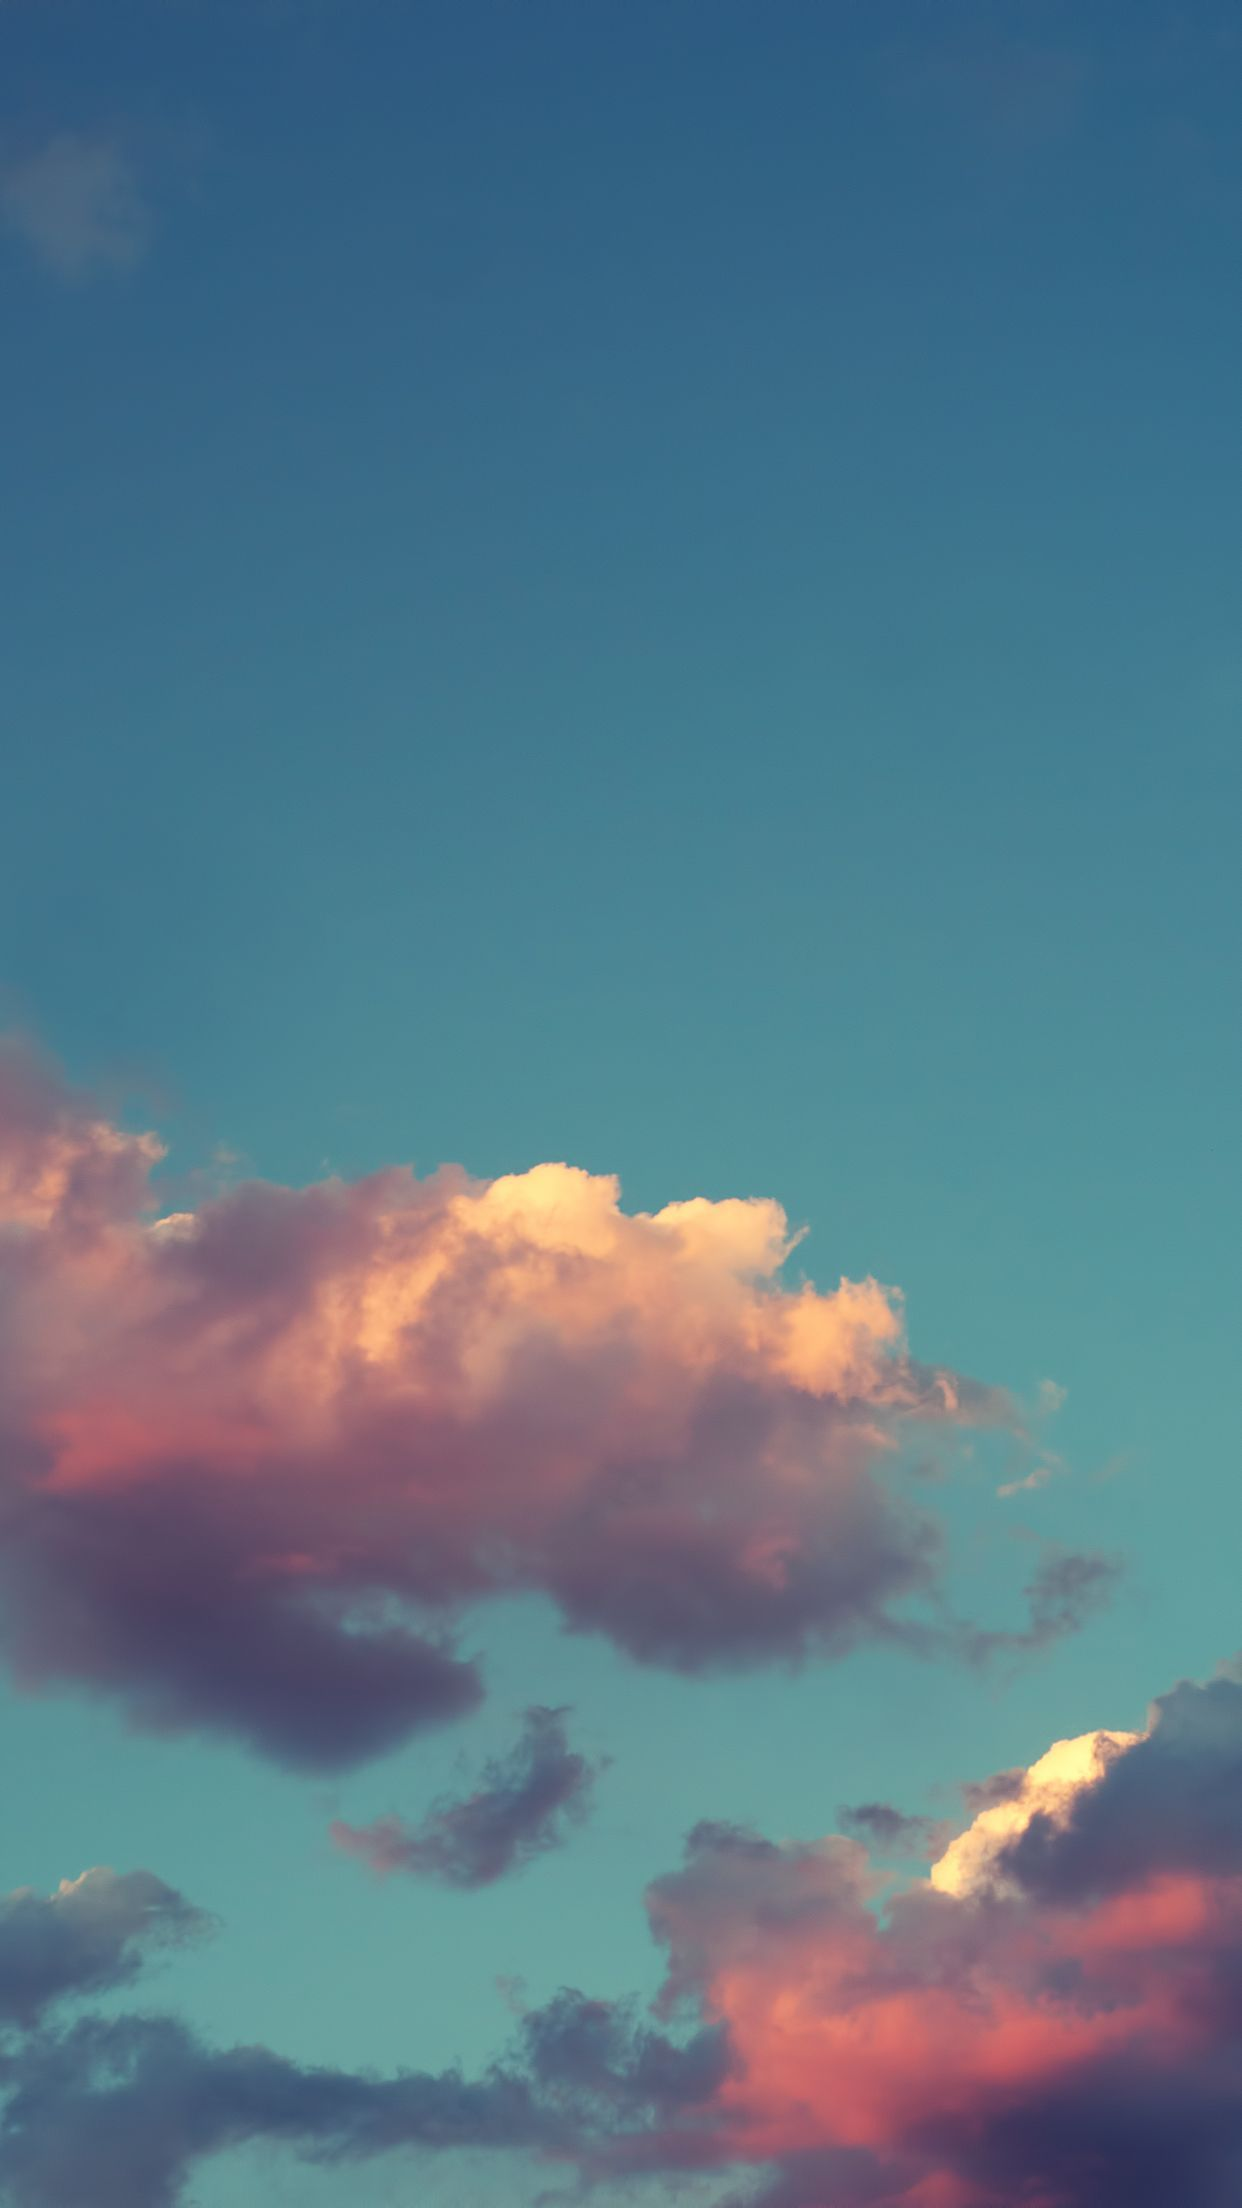 40 Clouds Iphone Wallpapers Download At Wallpaperbro Iphone 6s Wallpaper Wallpaper Iphone Summer Clouds Wallpaper Iphone Sunset clouds iphone full hd wallpaper